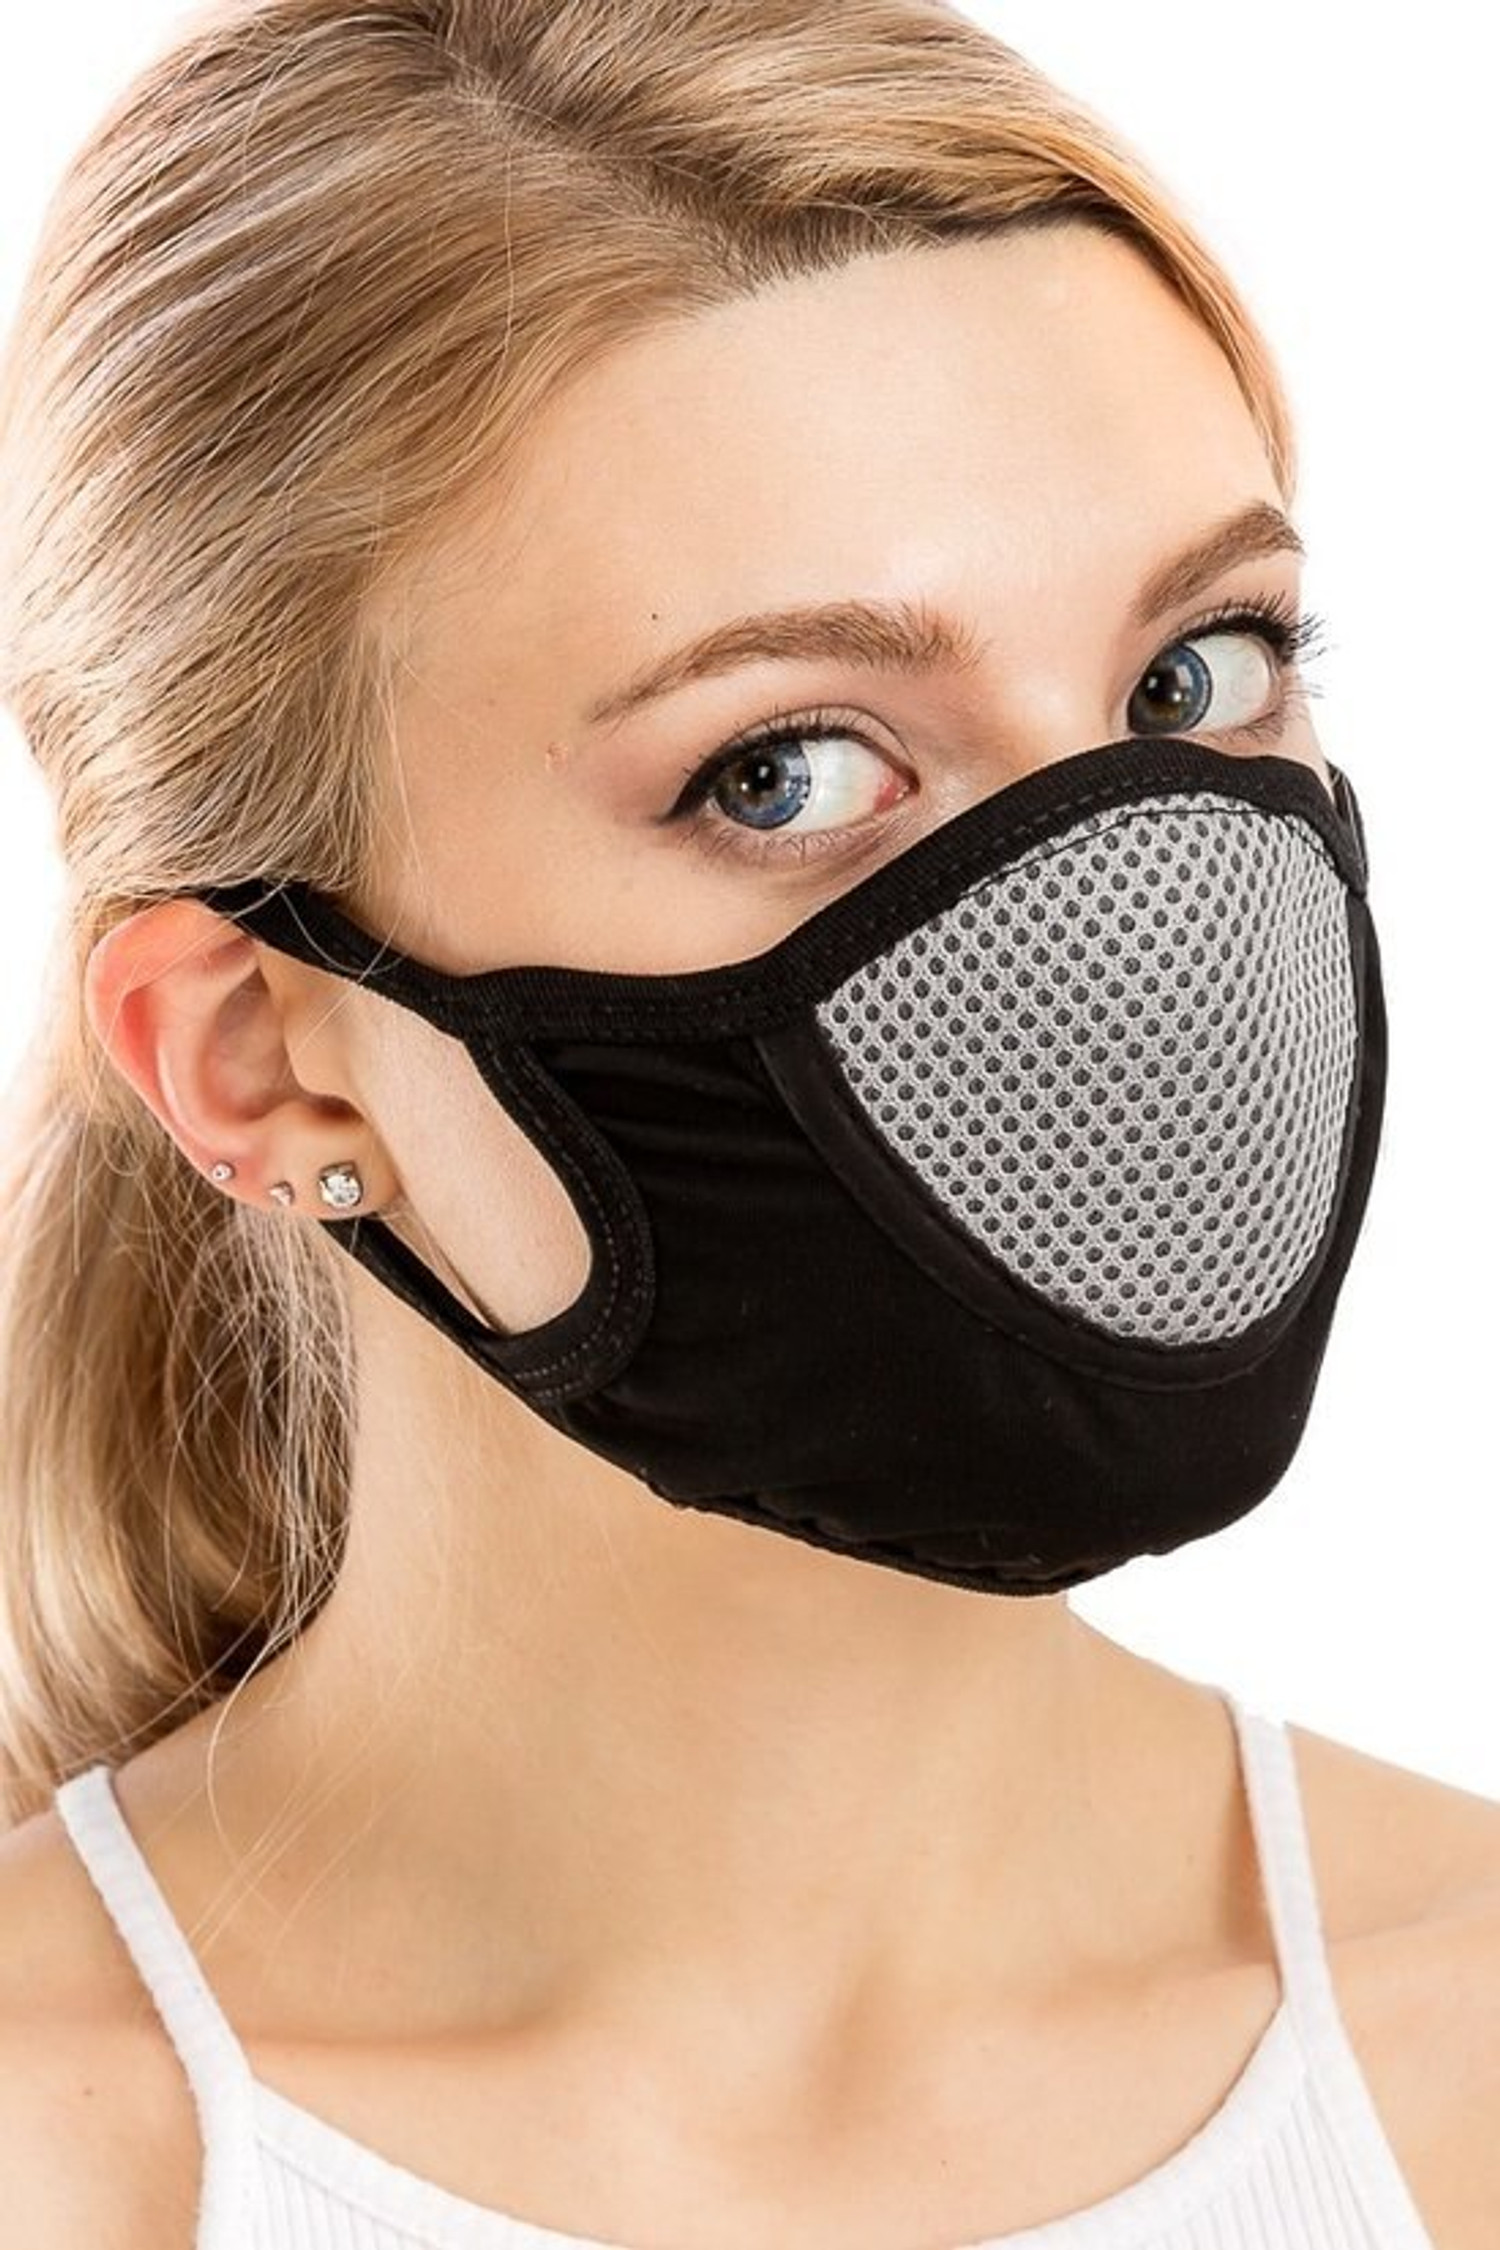 Heather Gray Unisex Multi Layer Fabric Mesh Comfort Face Mask